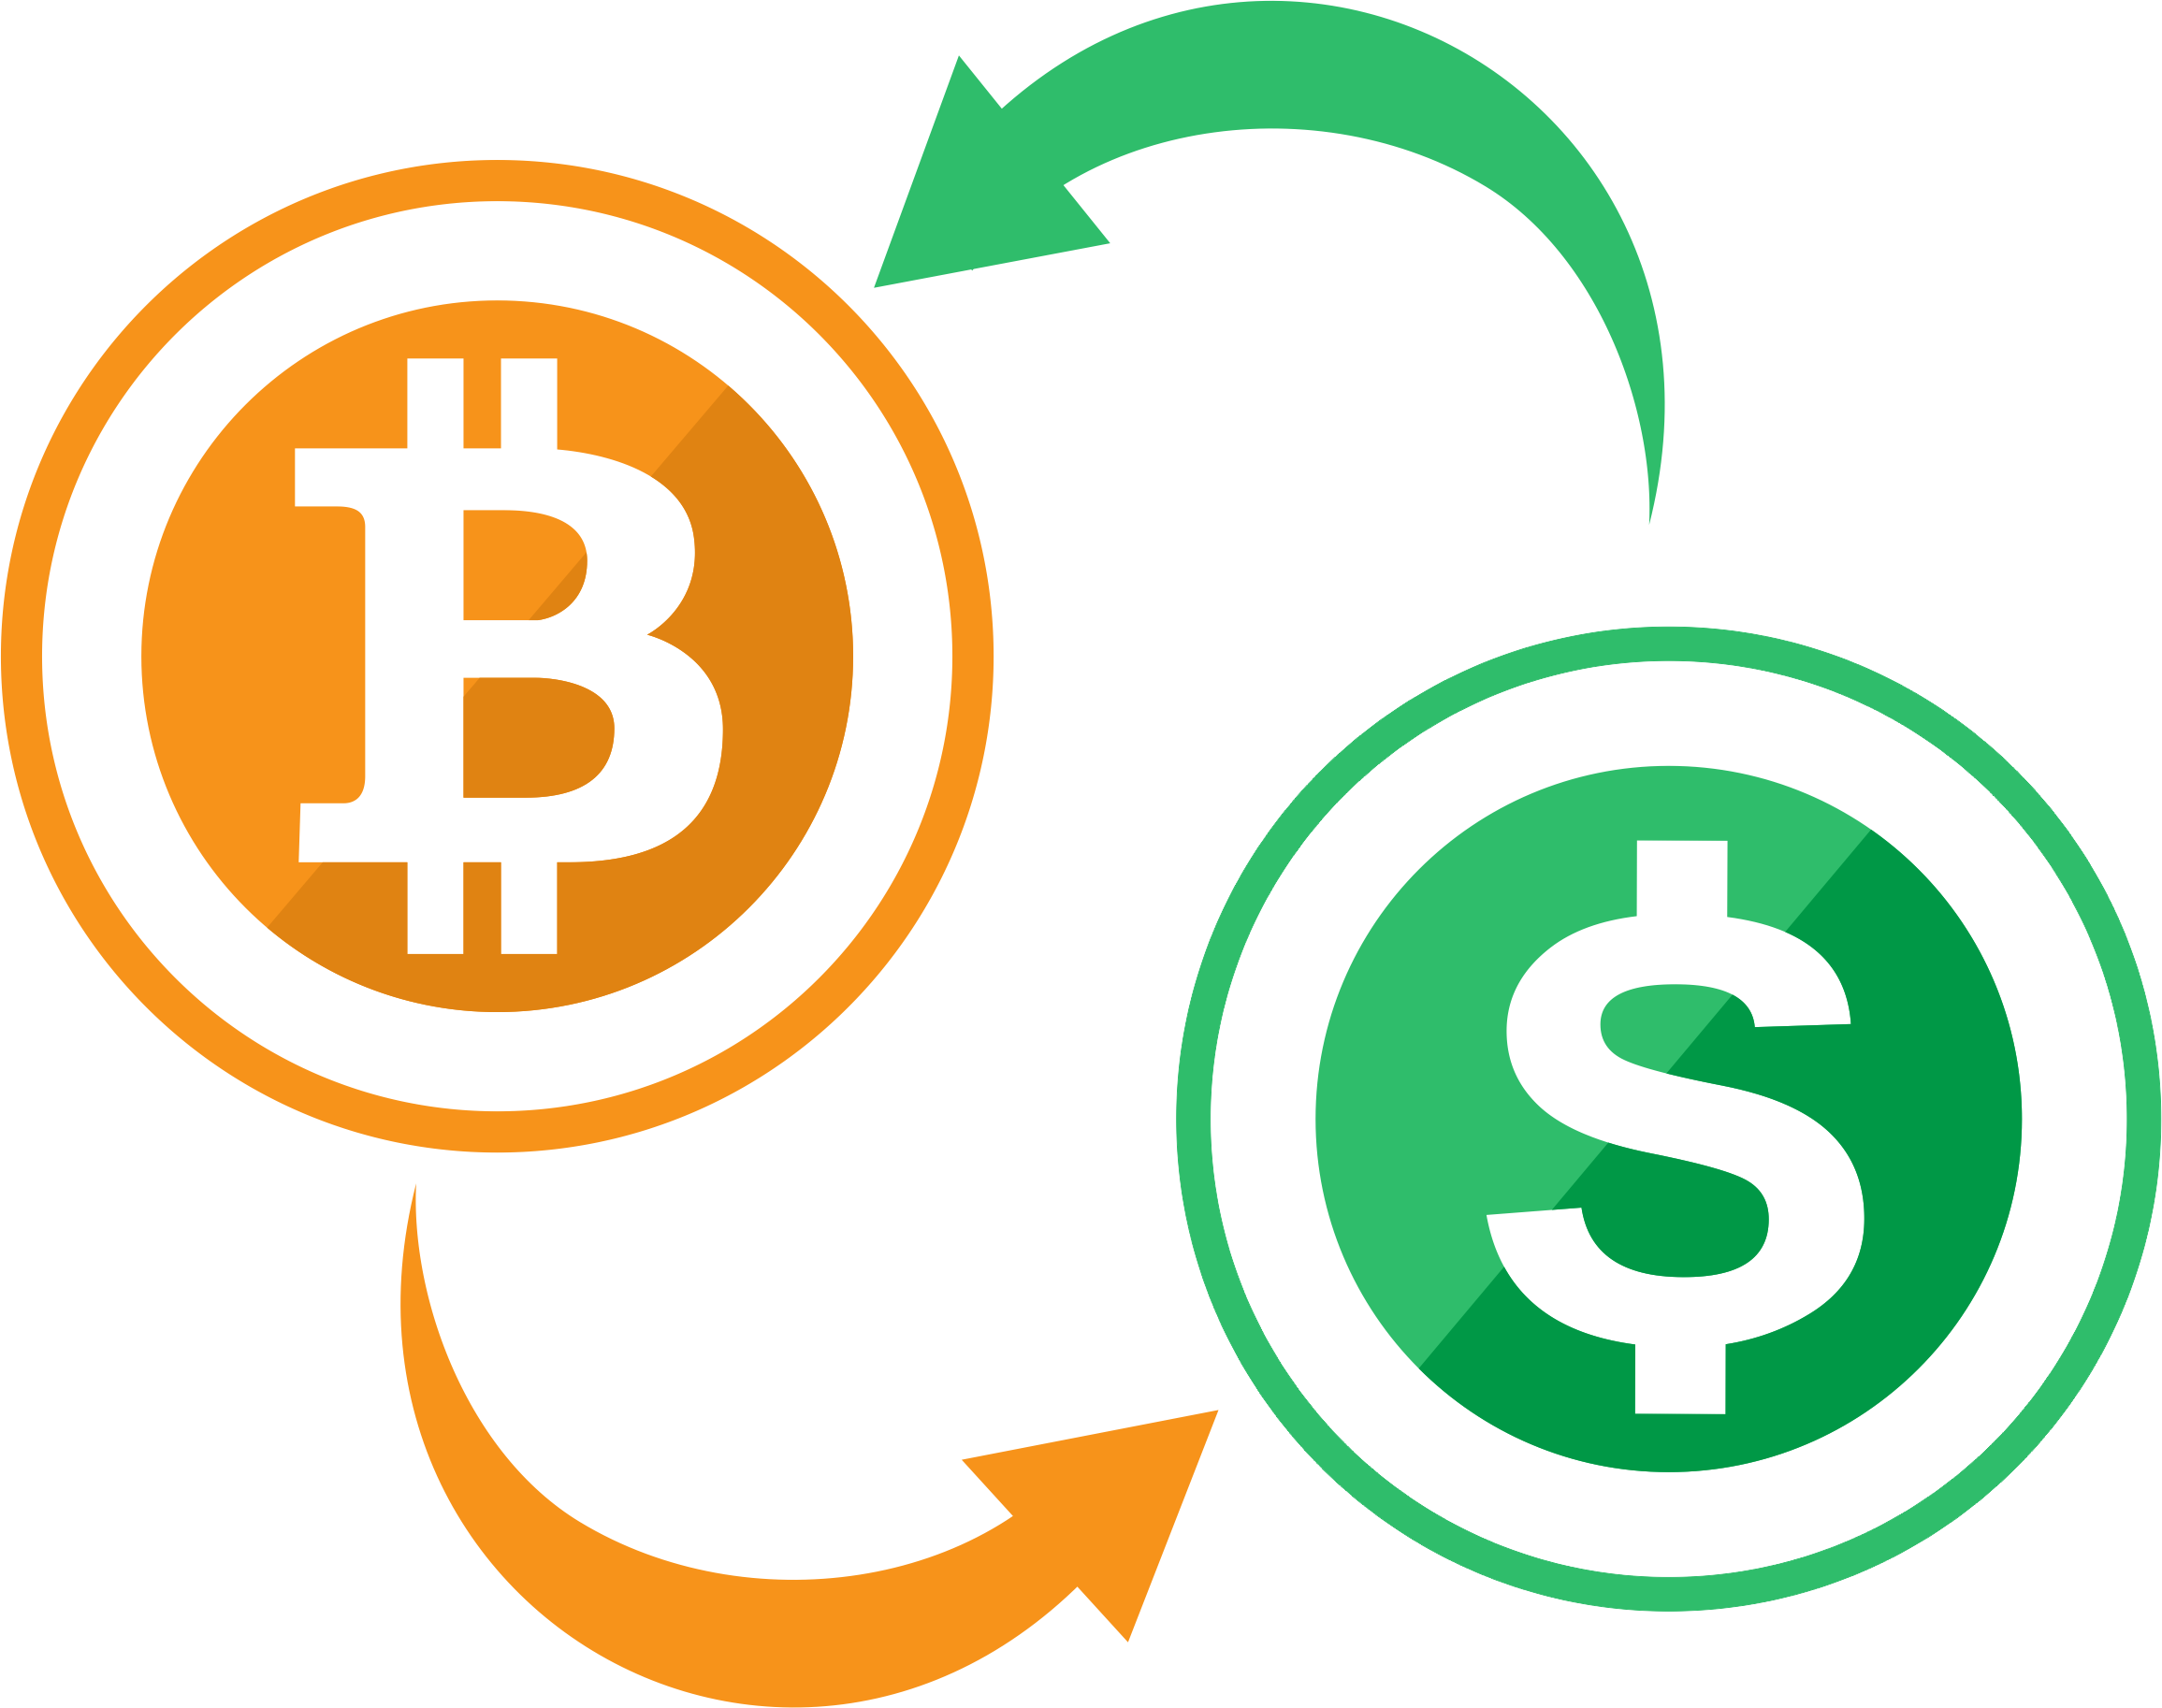 Bitcoin PNG HD Quality.